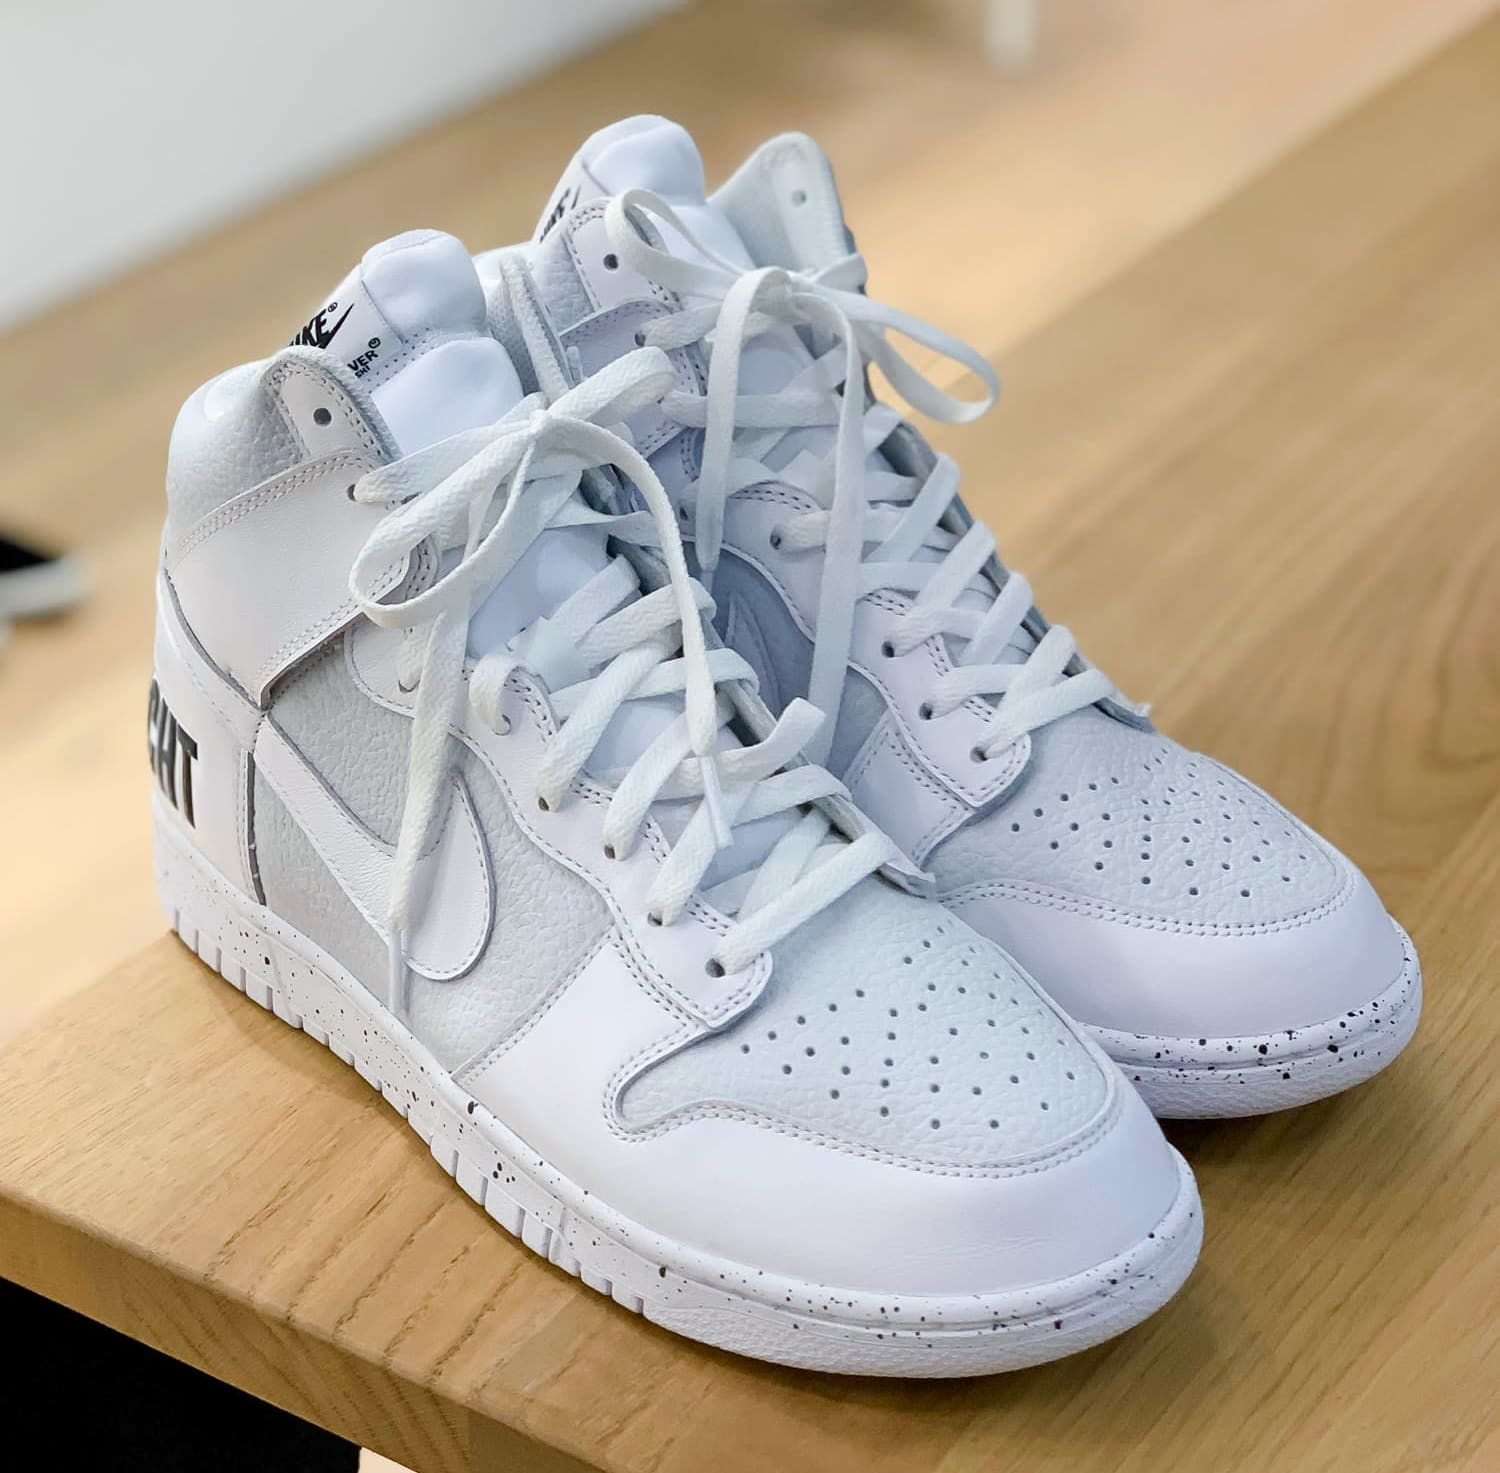 Undercover x Nike Dunk High White Pair